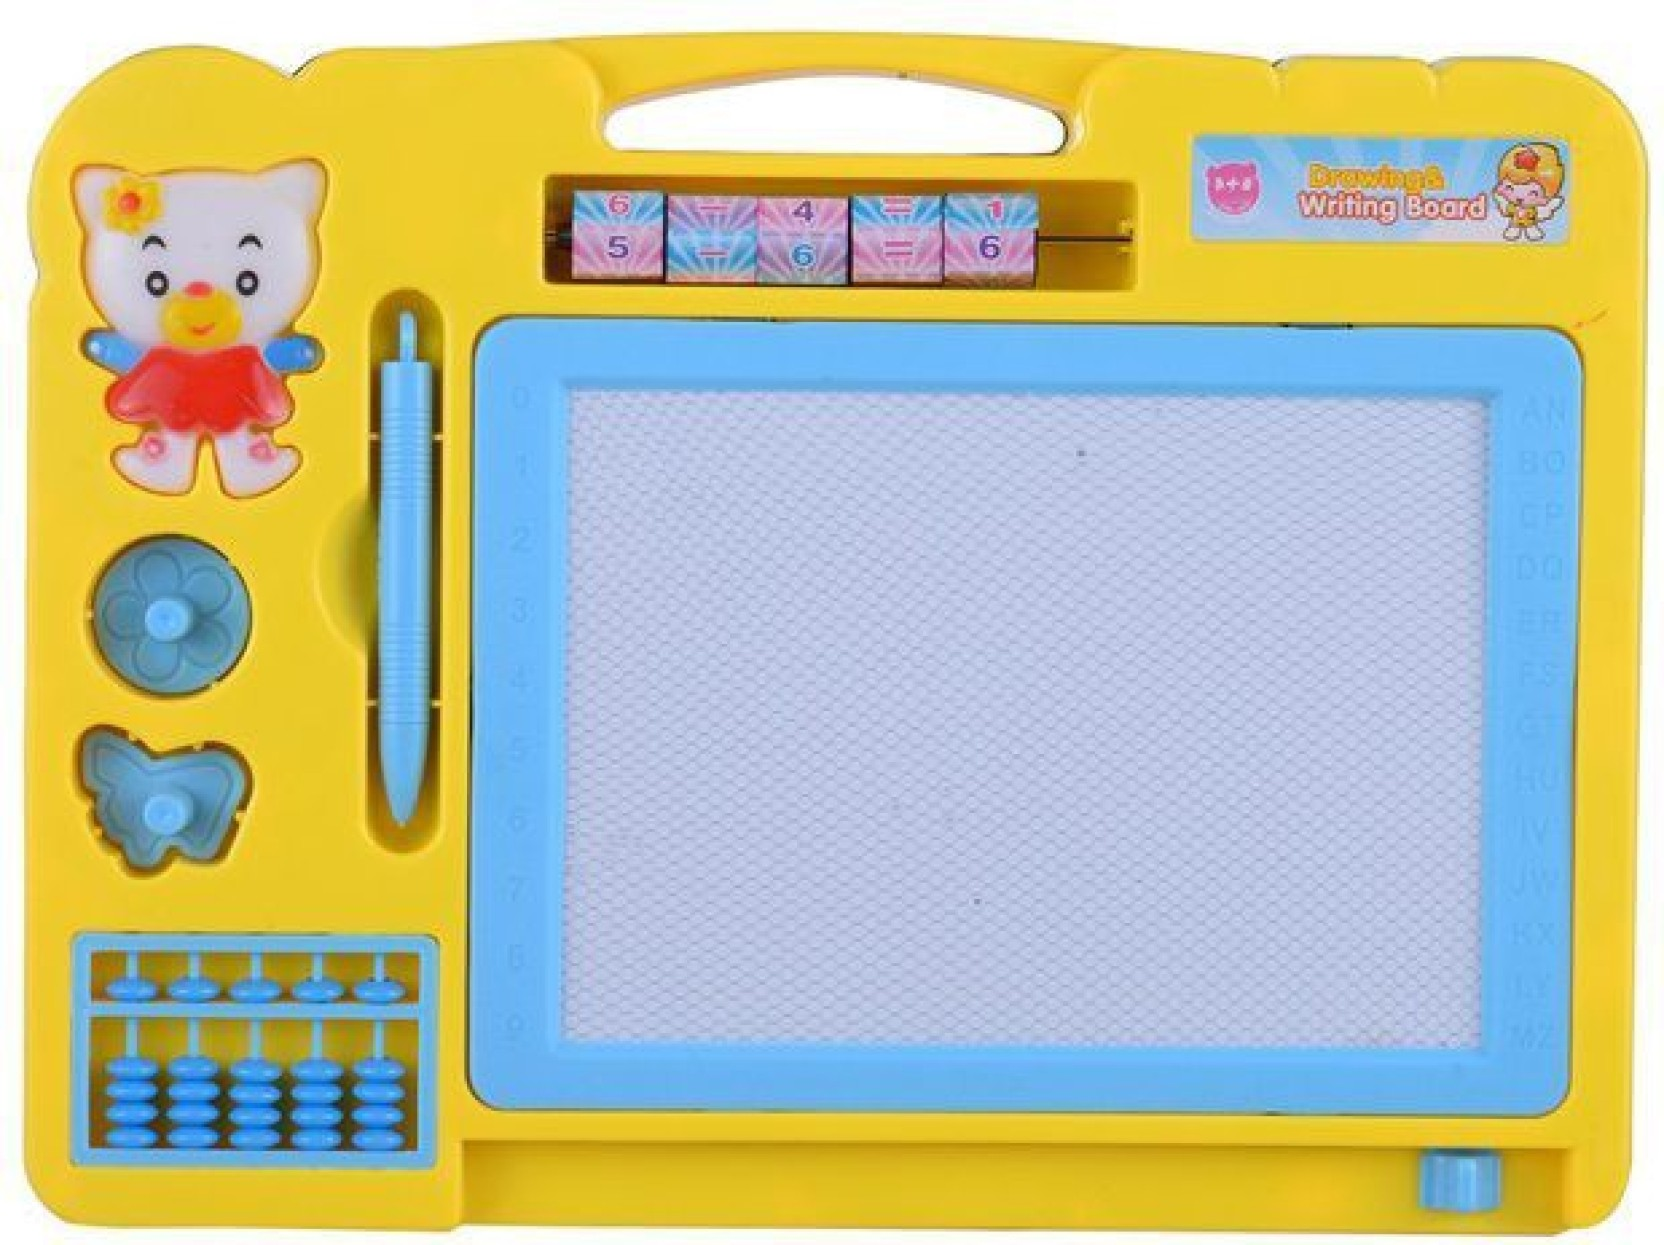 Speoma Magical Slate Writing Board 2 In 1 Toys For Kids Price Circuit Plastic Iphone 5 5s Phone Case Baby N Toddler Home